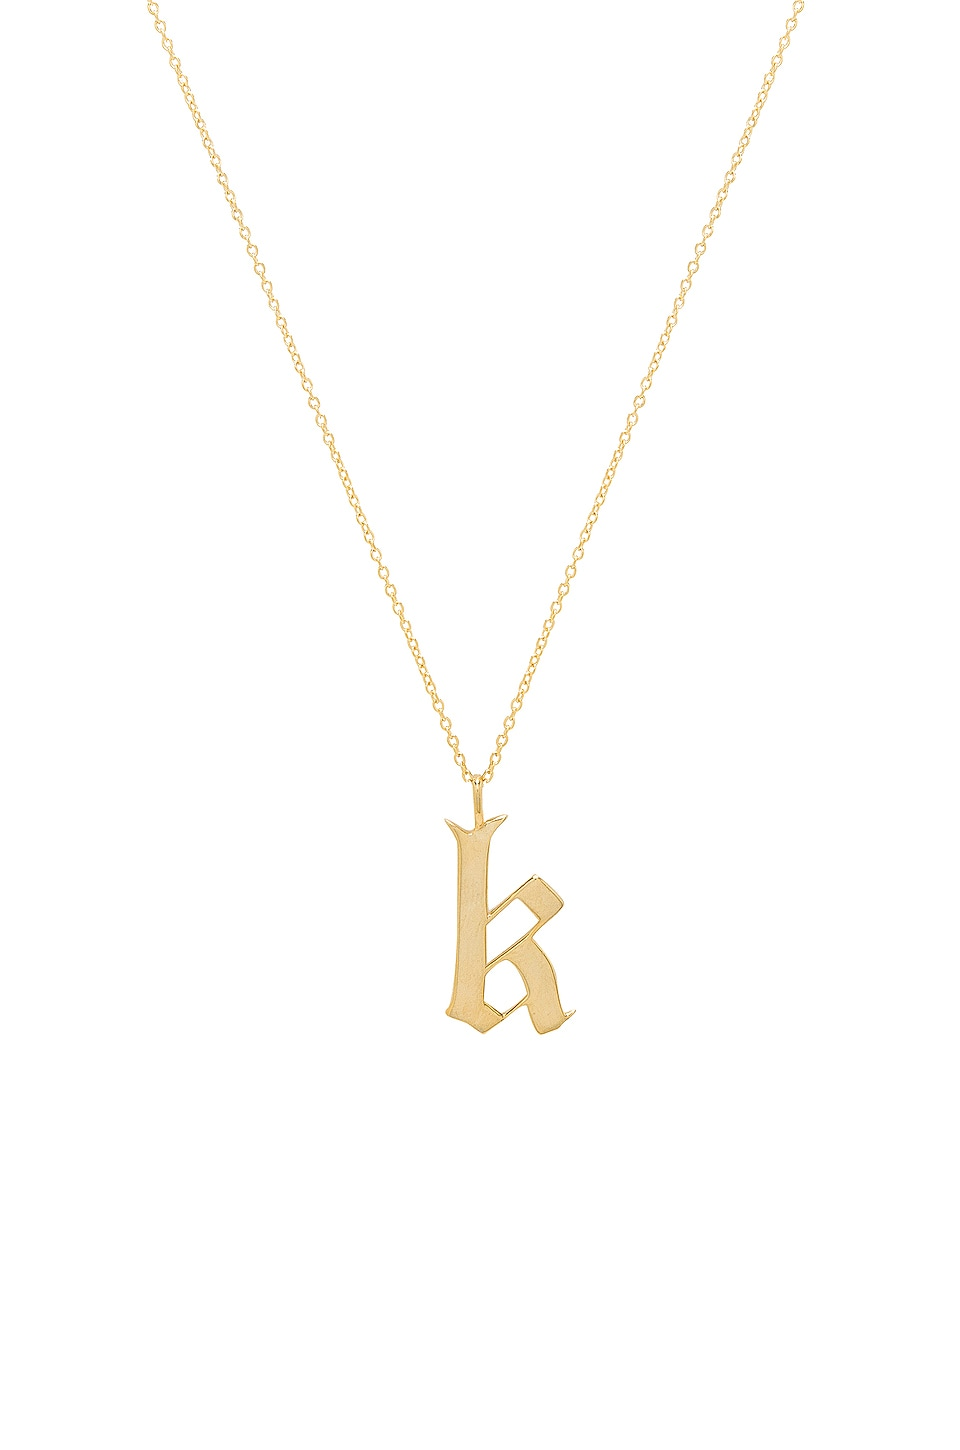 The Old English K Pendant